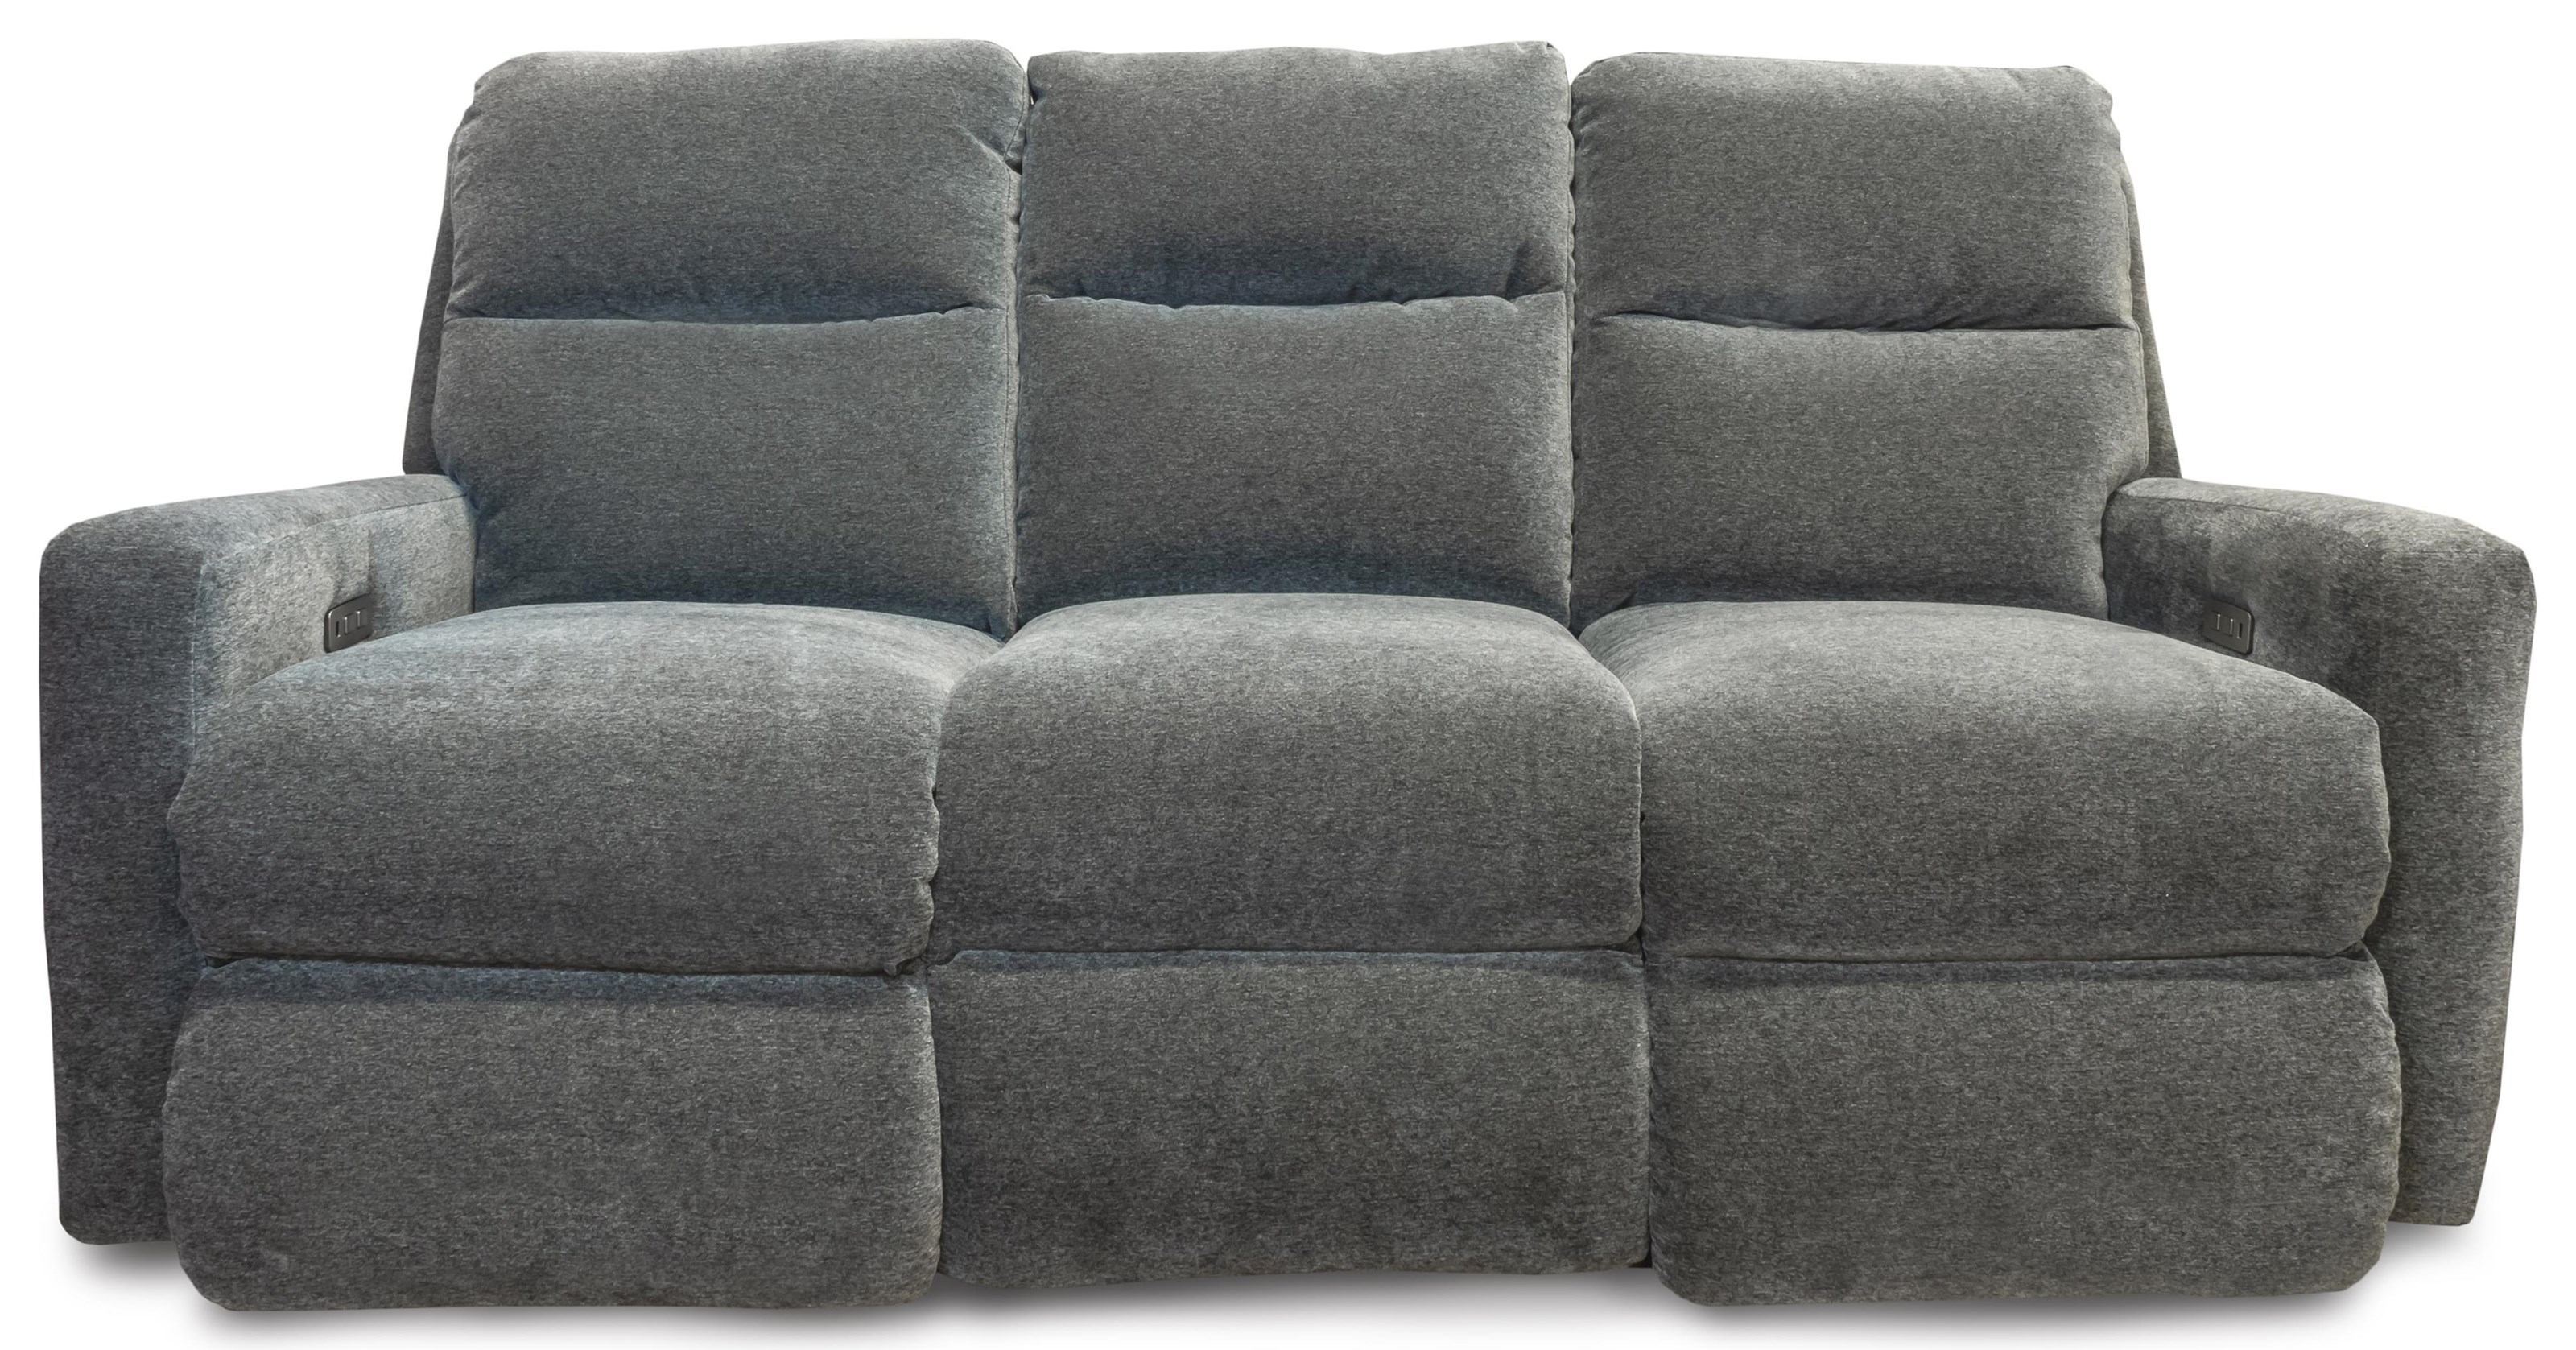 Mohair - Indie Power Headrest Sofa by Design to Recline at Rotmans